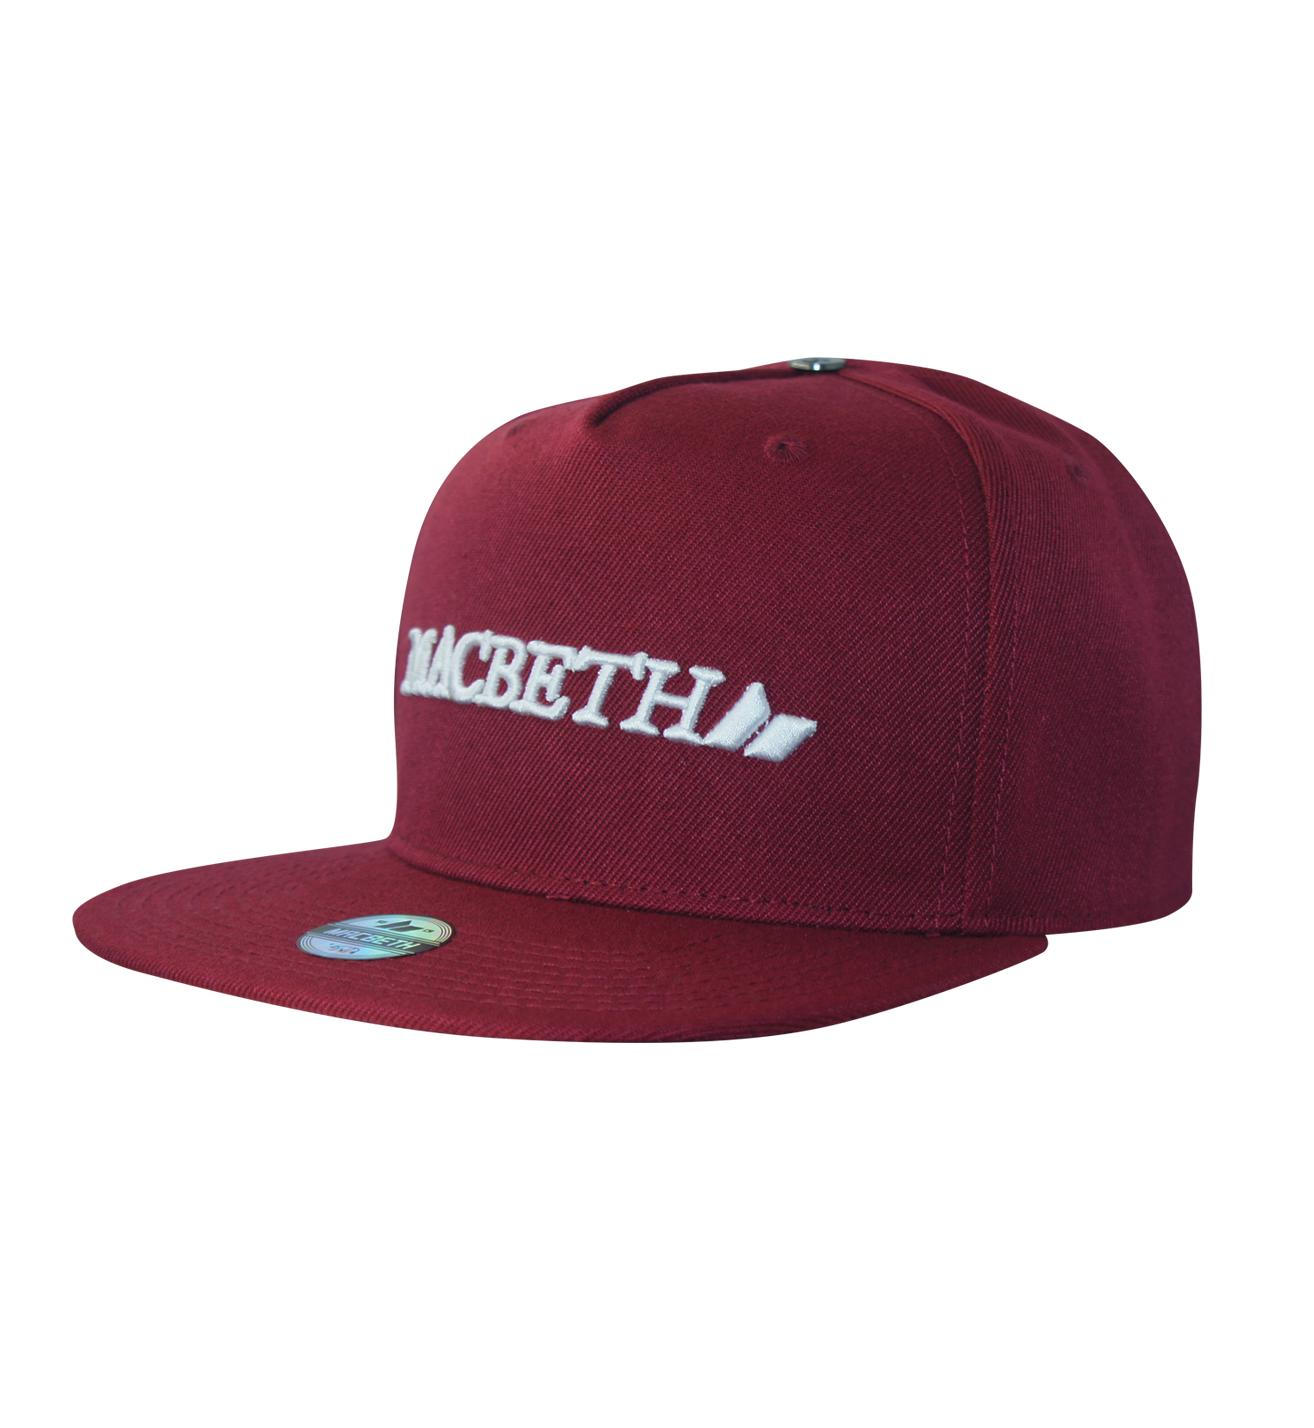 3ef69e1d440 Macbeth Philippines - Macbeth Hats for Men for sale - prices ...